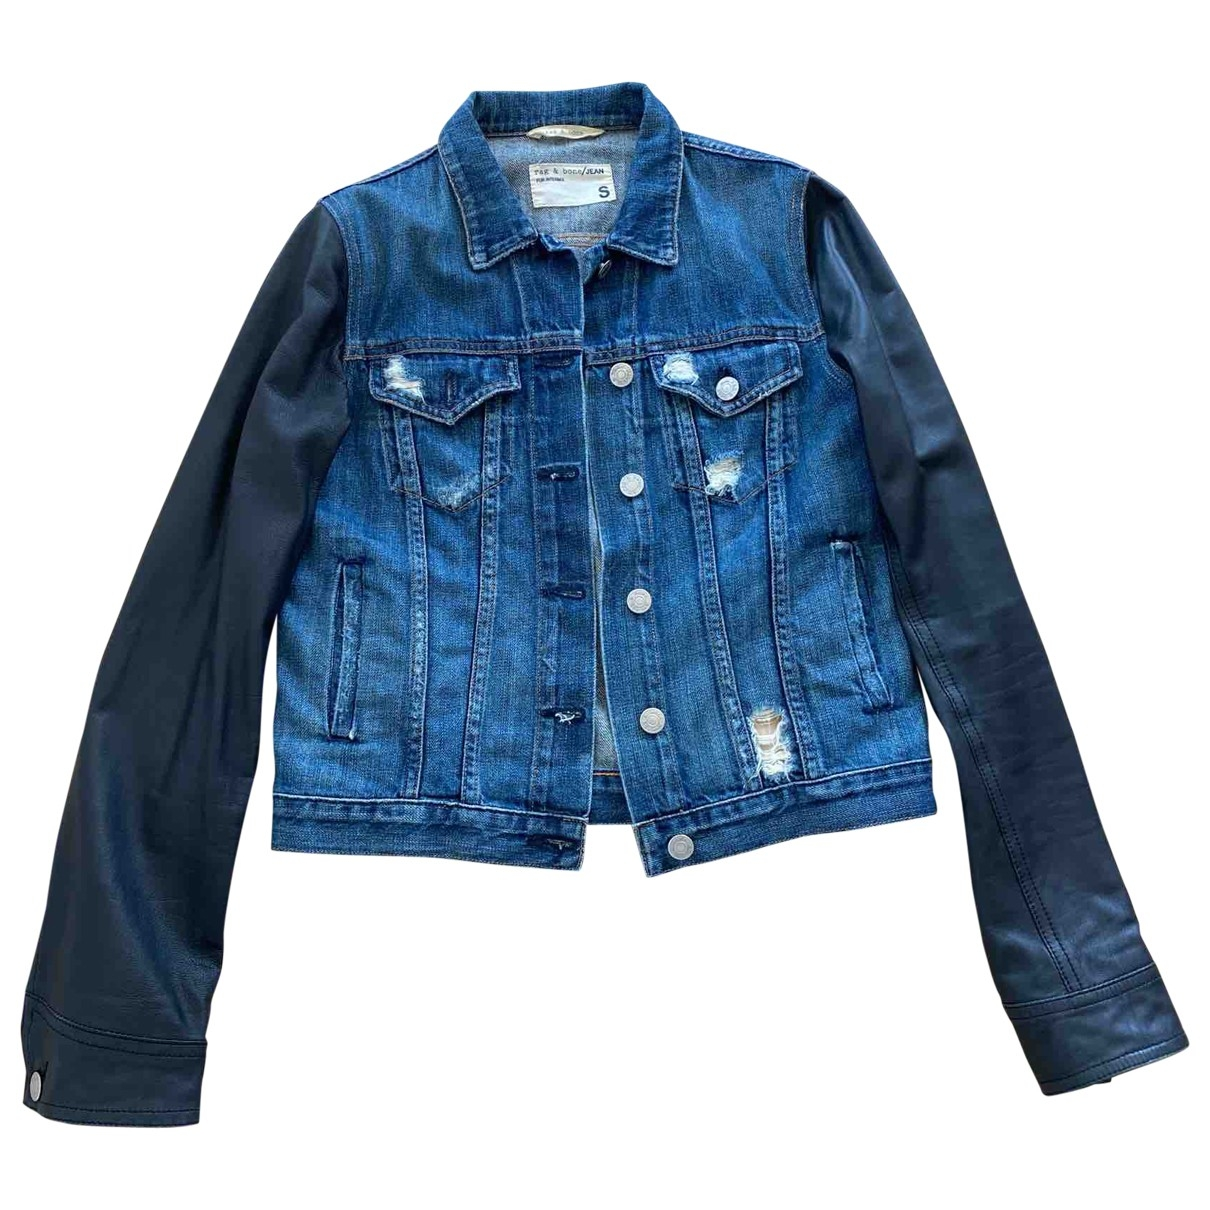 Rag & Bone \N Jacke in  Blau Denim - Jeans